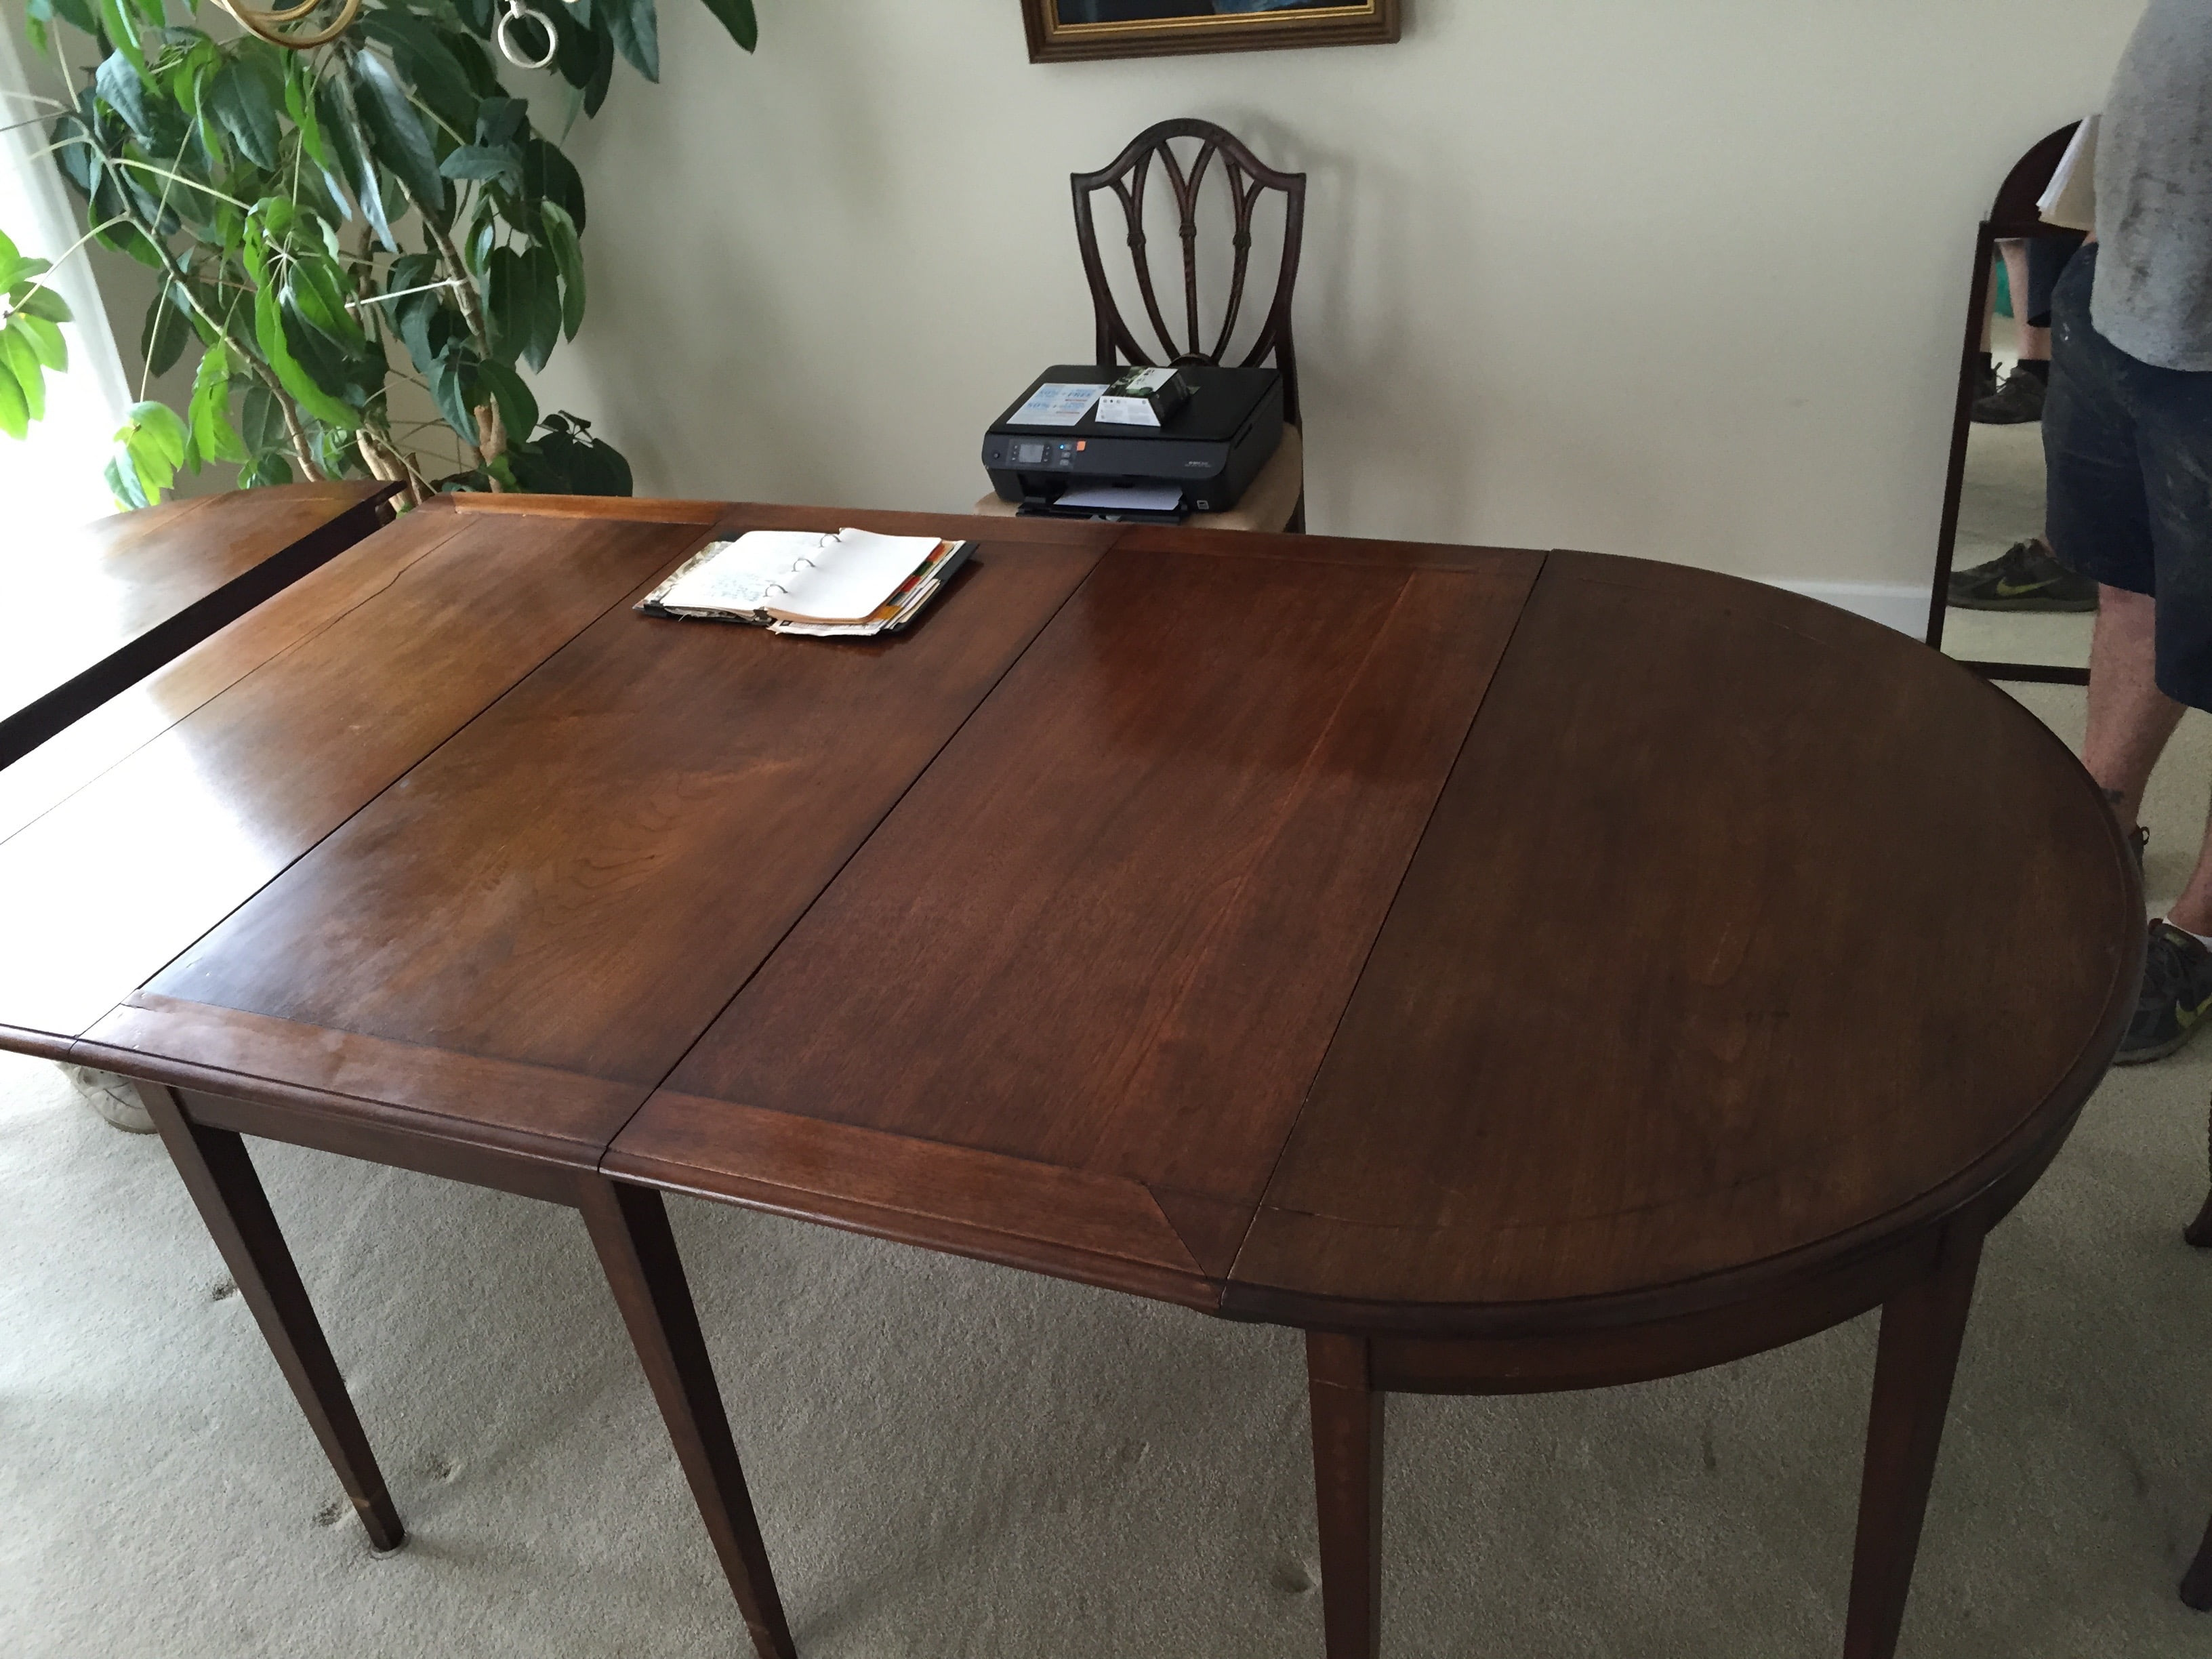 With All The Tables Positives It Was Desperately In Need Of A Full Restoration Gentleman Stated Prior To His Decades Ownership